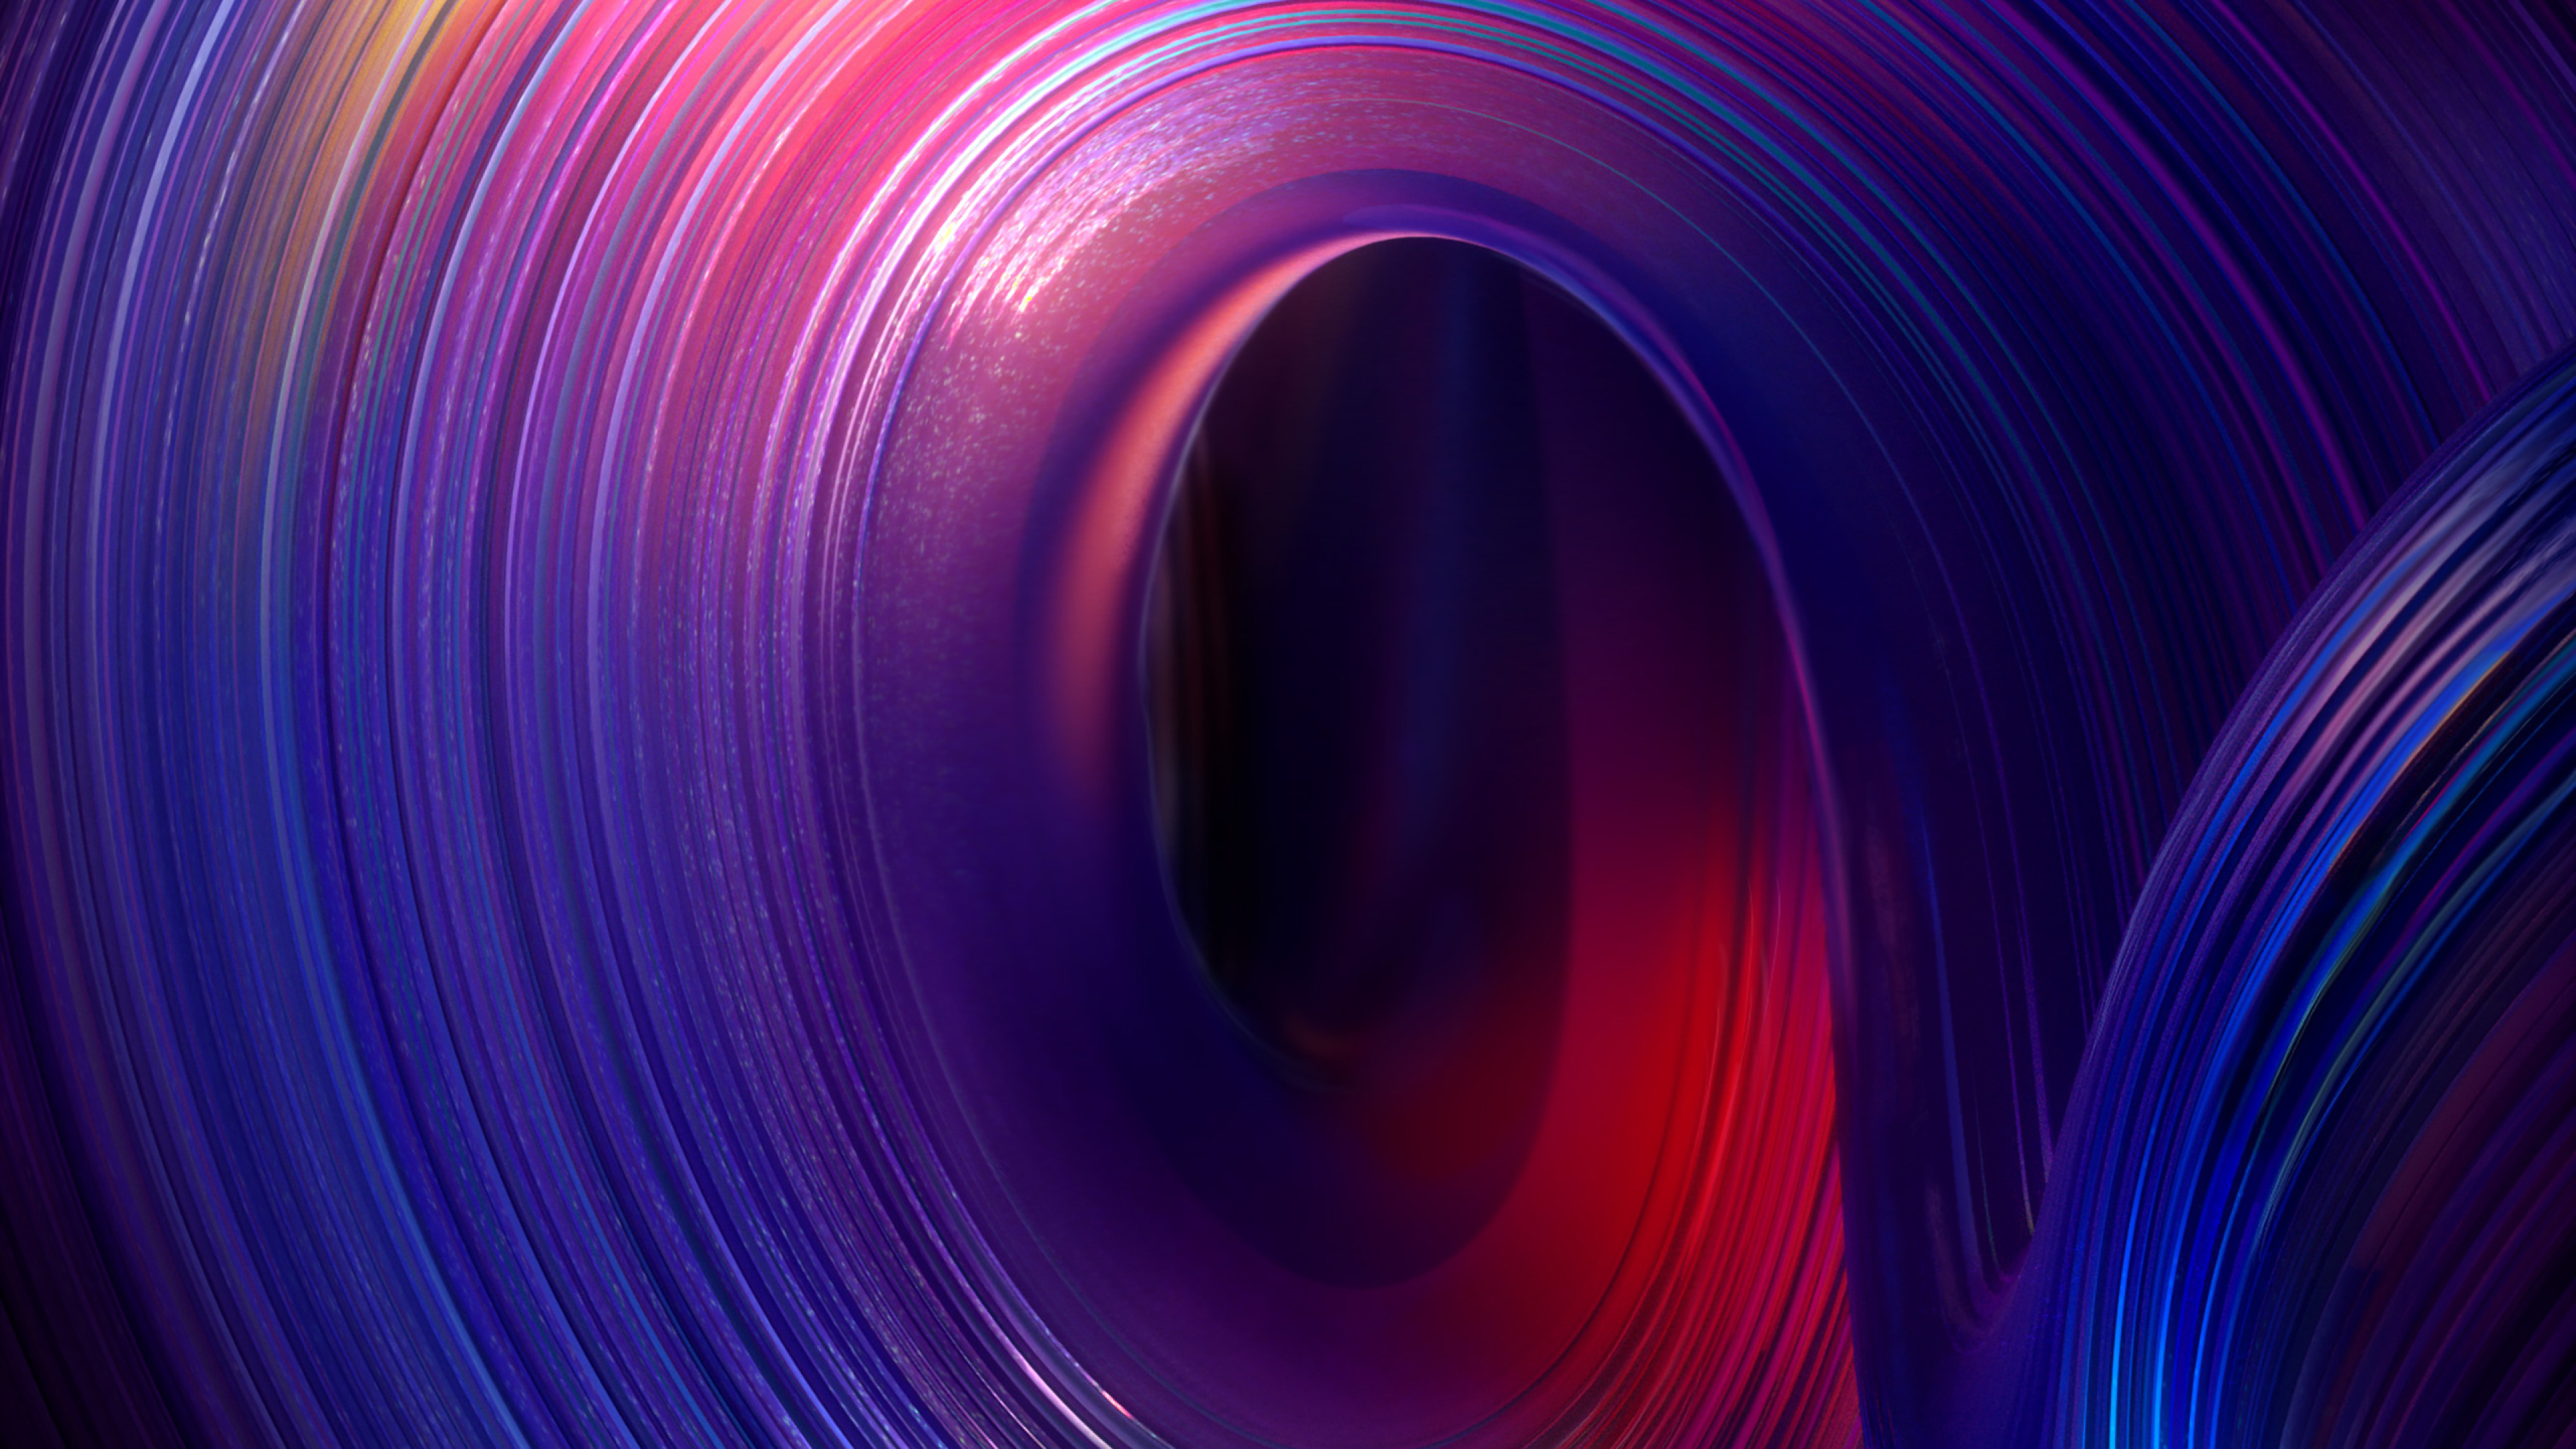 3840x2160 Twisted Color Gradient 4K Background, HD ...